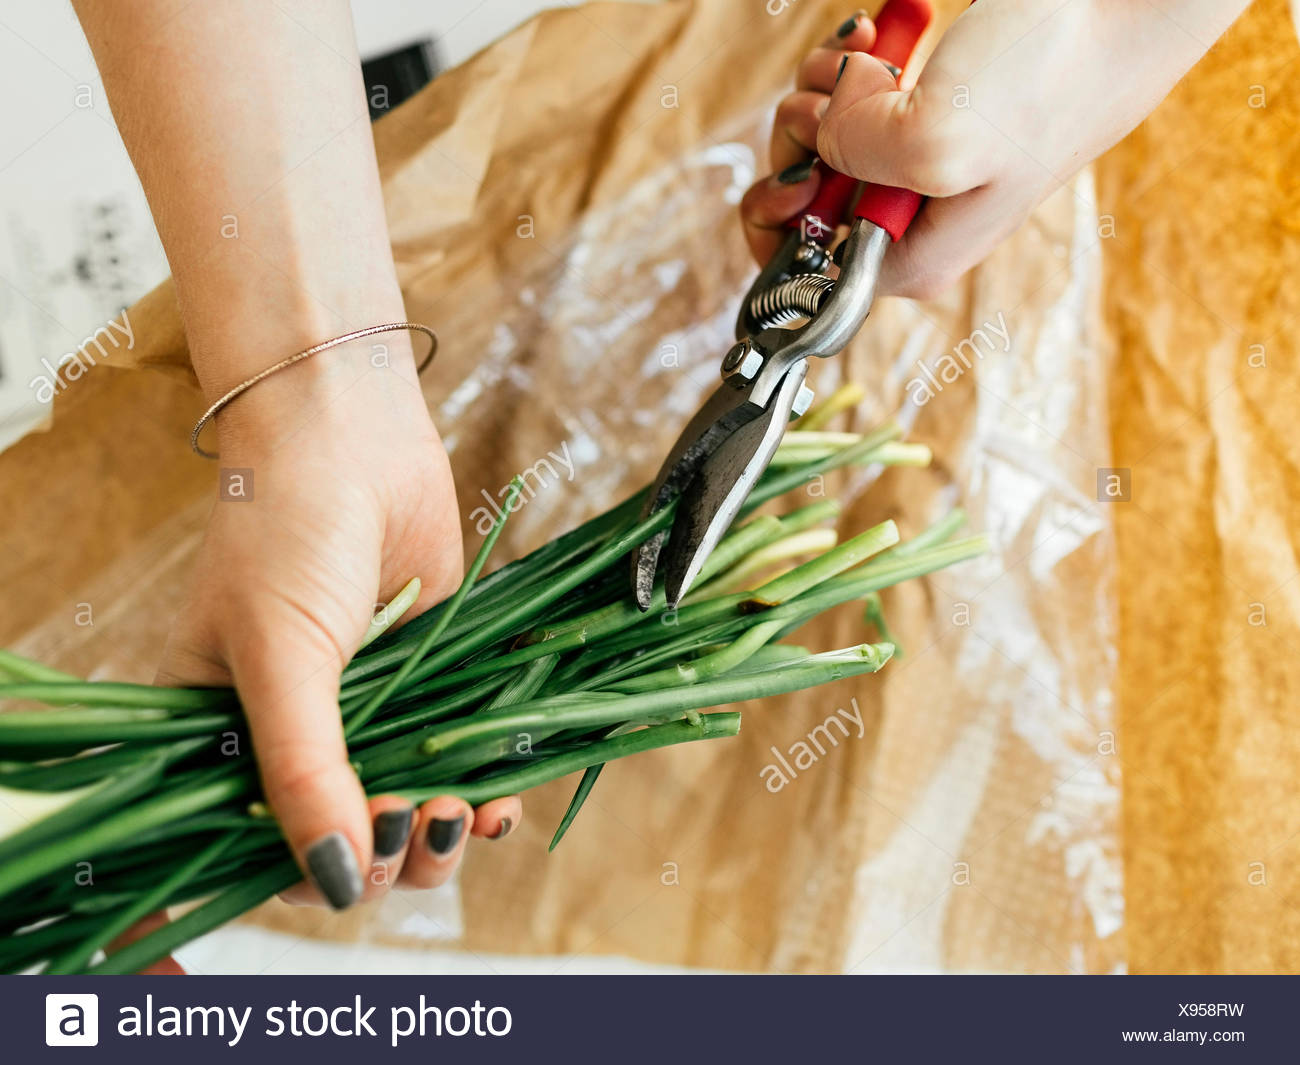 Woman cutting flower stems - Stock Image